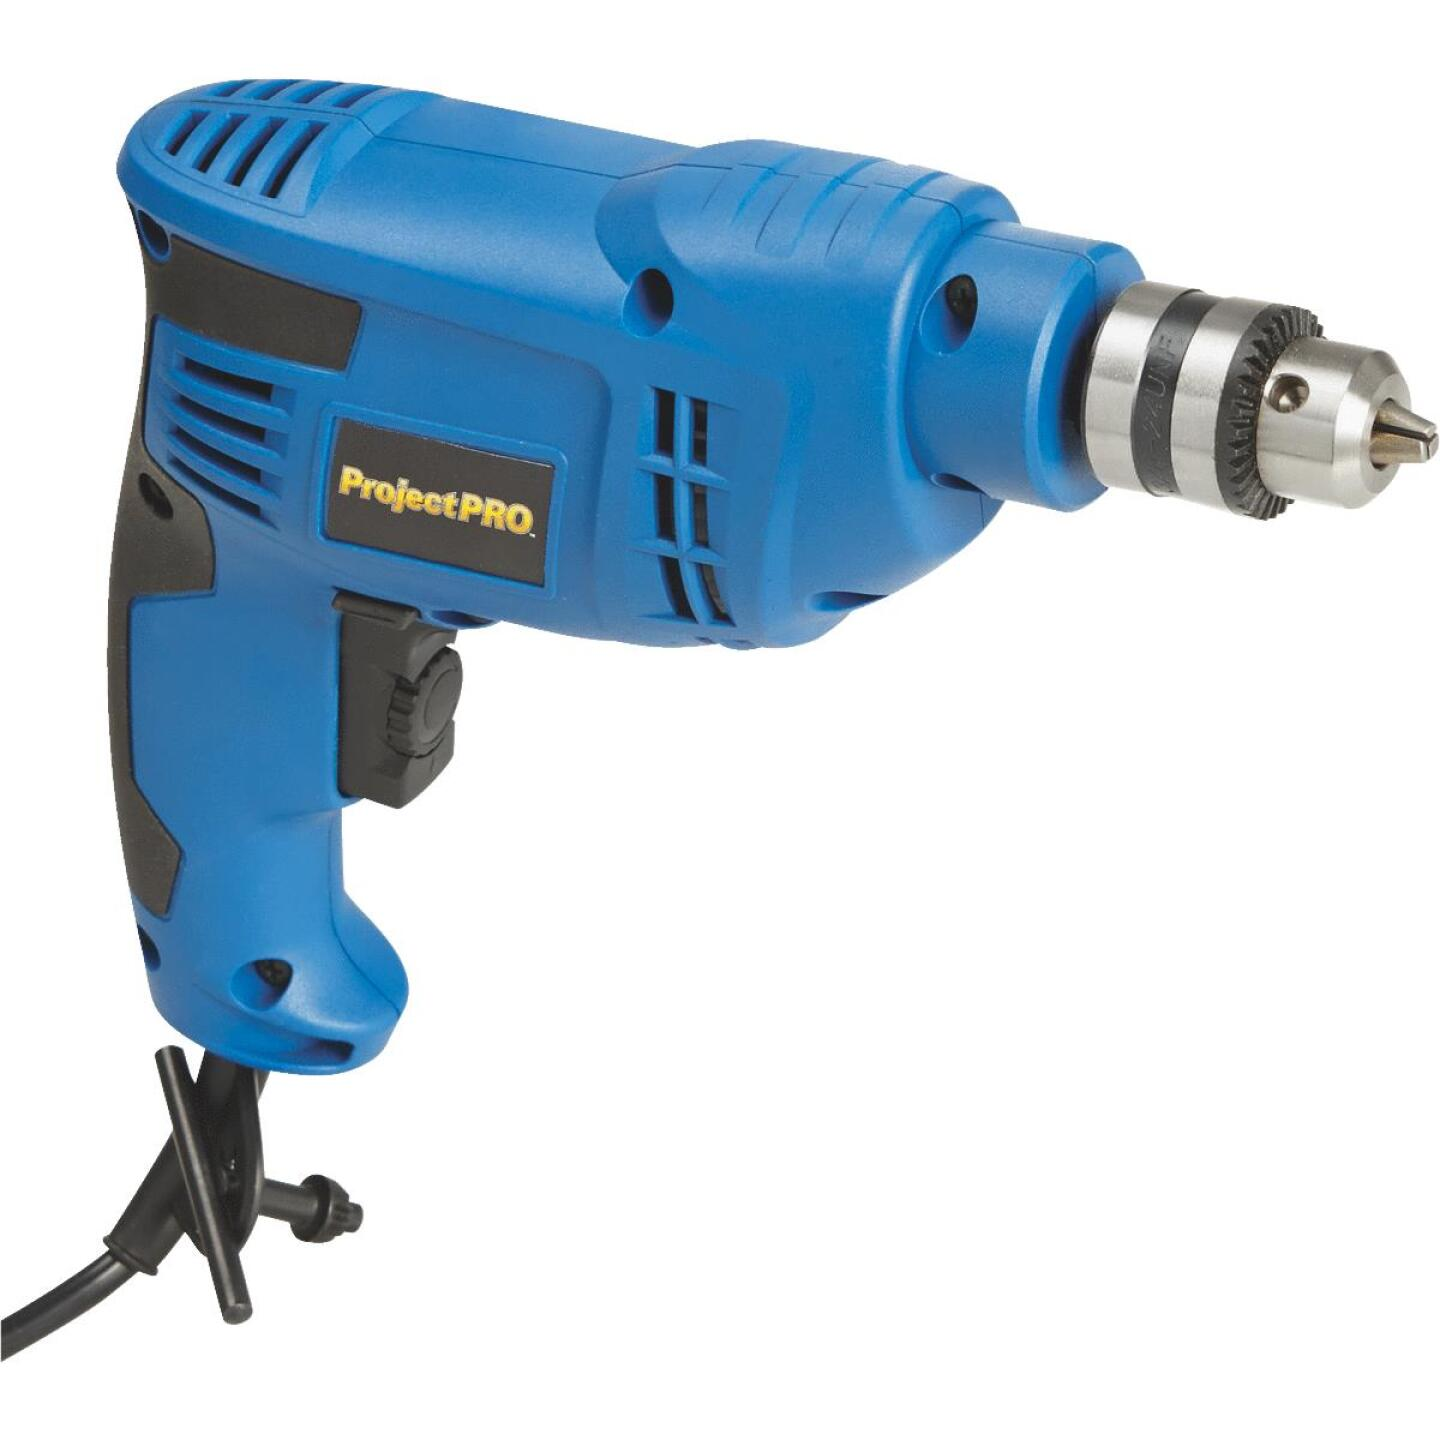 Project Pro 3/8 In. 4.2-Amp Keyed Electric Drill Image 1